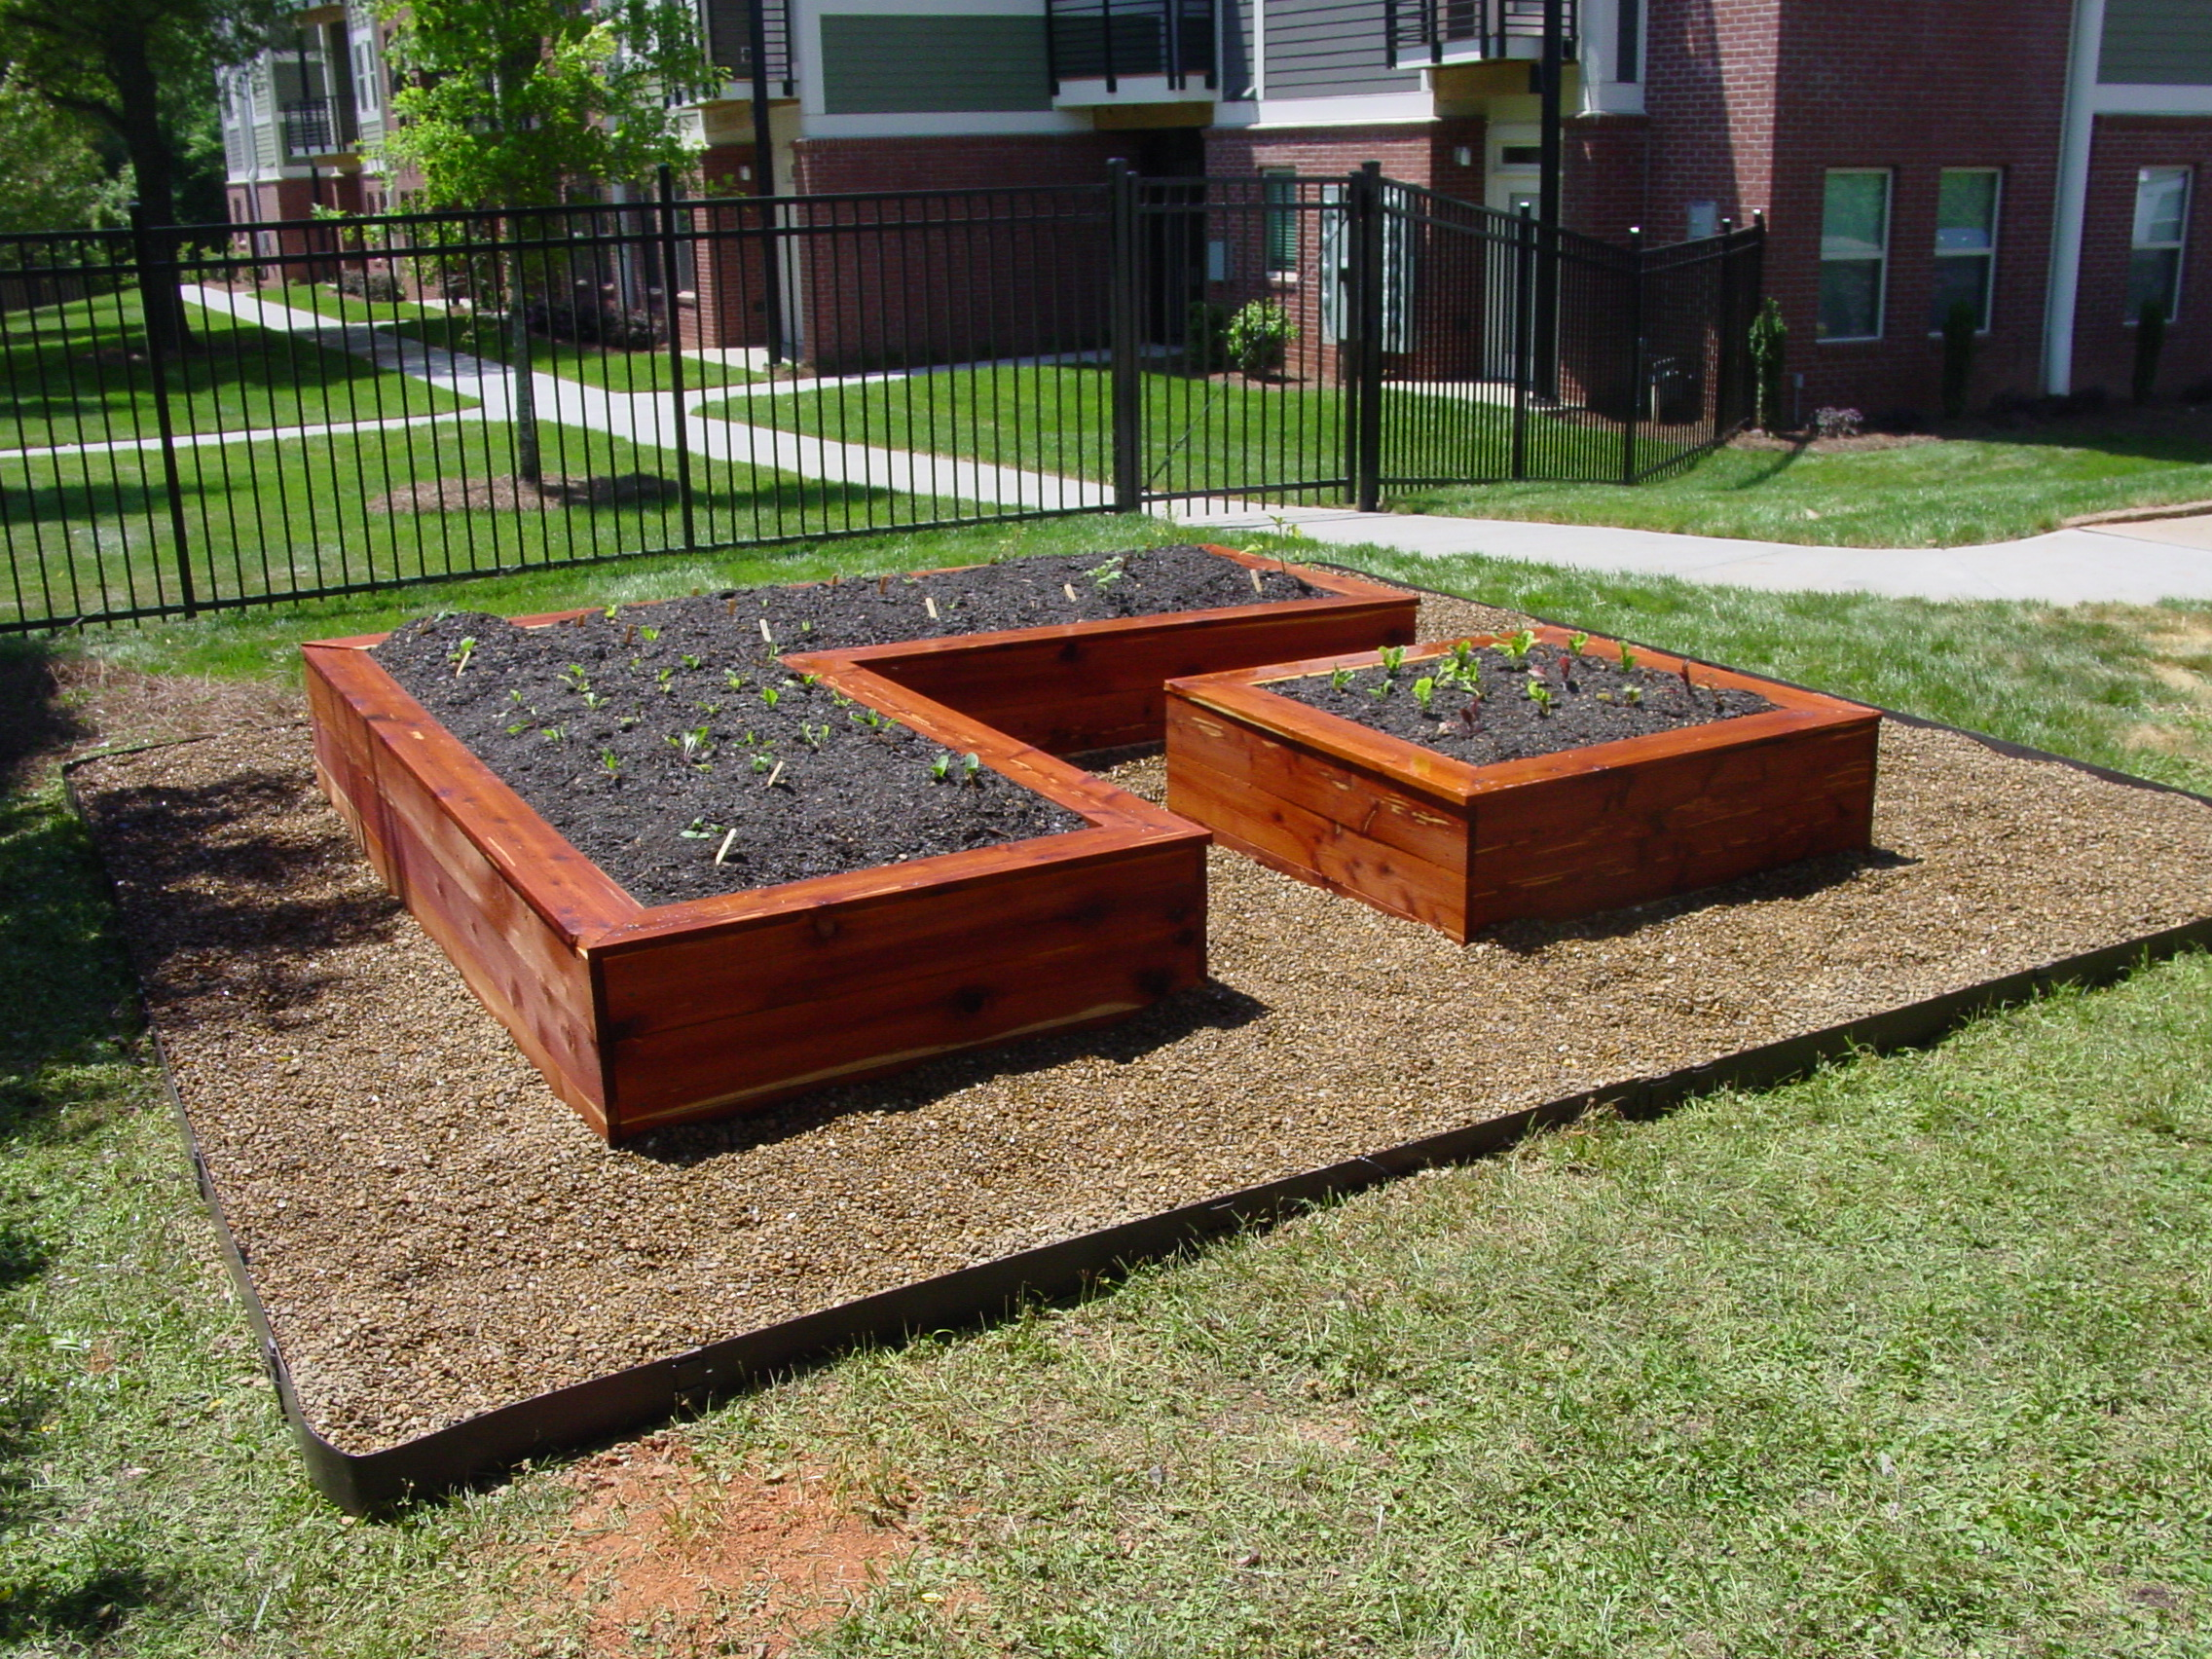 Garden bed designs raised garden bed designs raised garden Raised garden beds